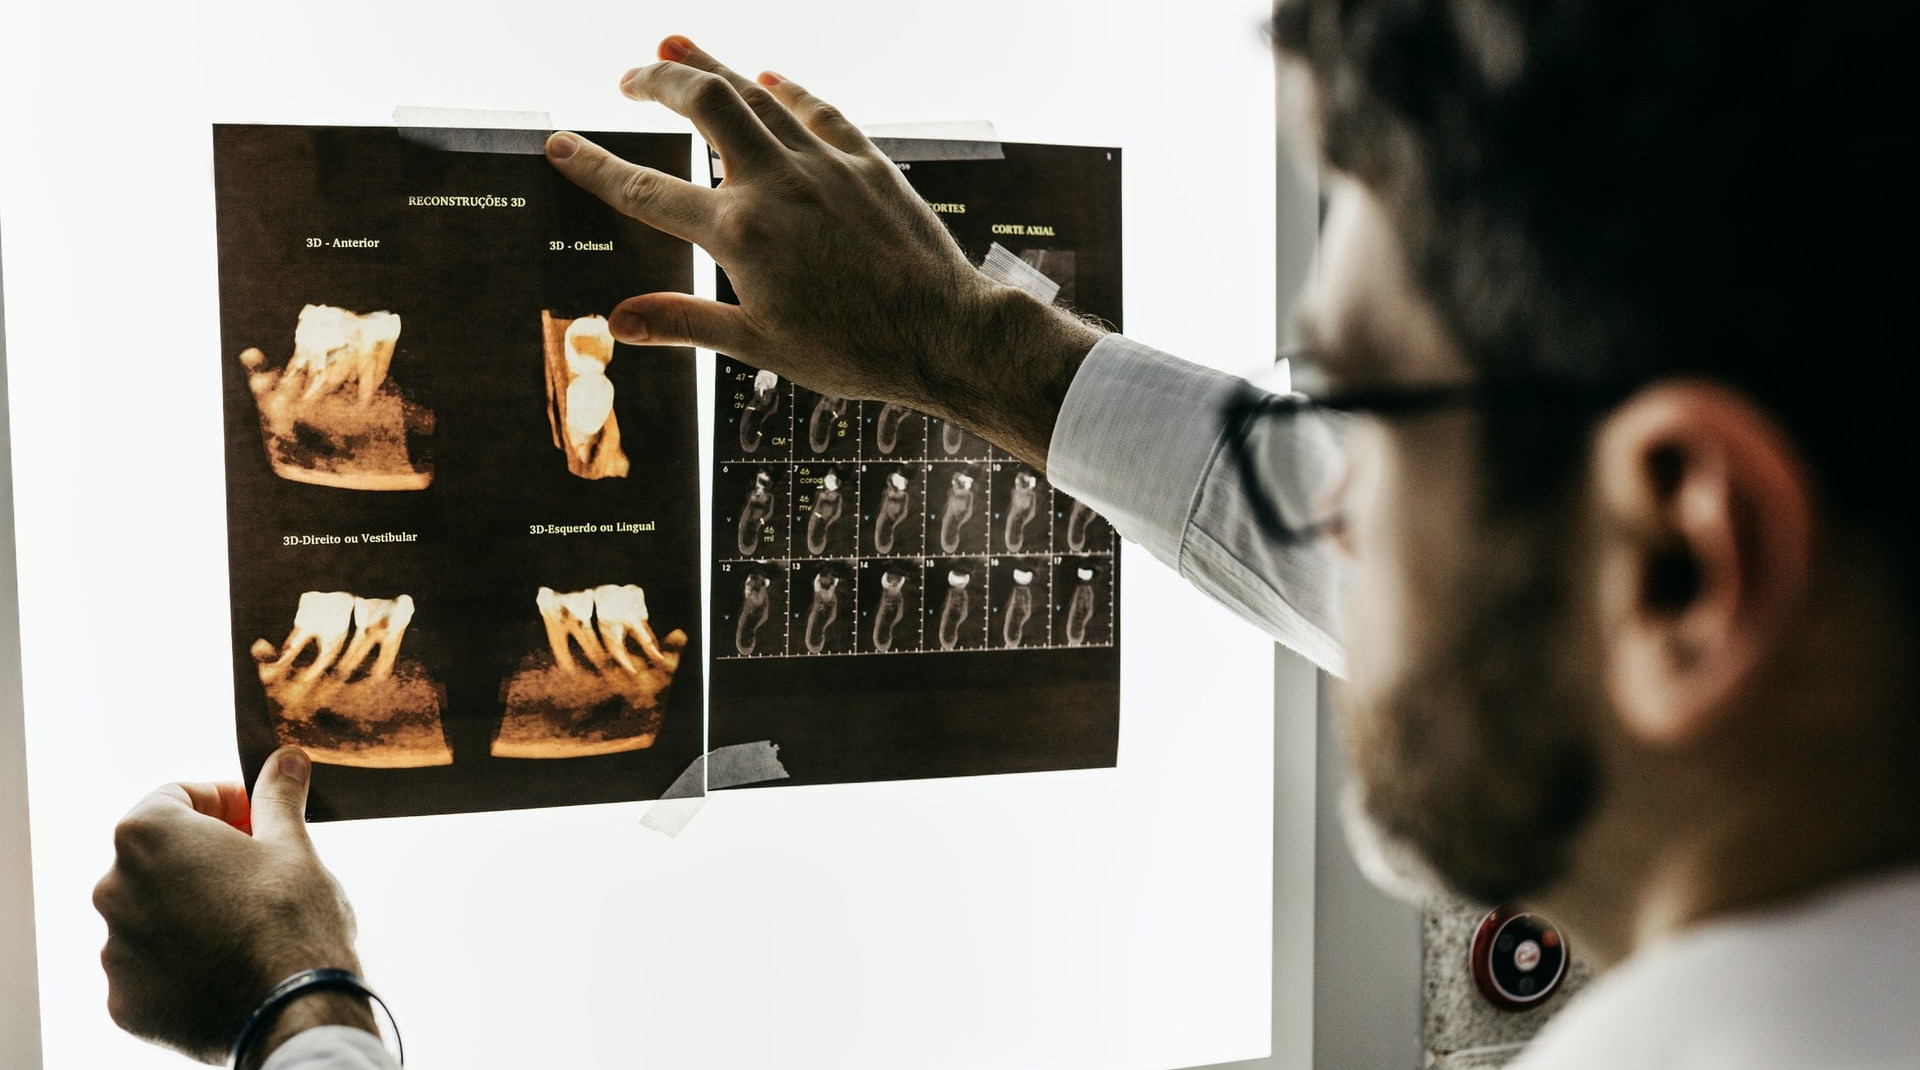 ai to read radiology results